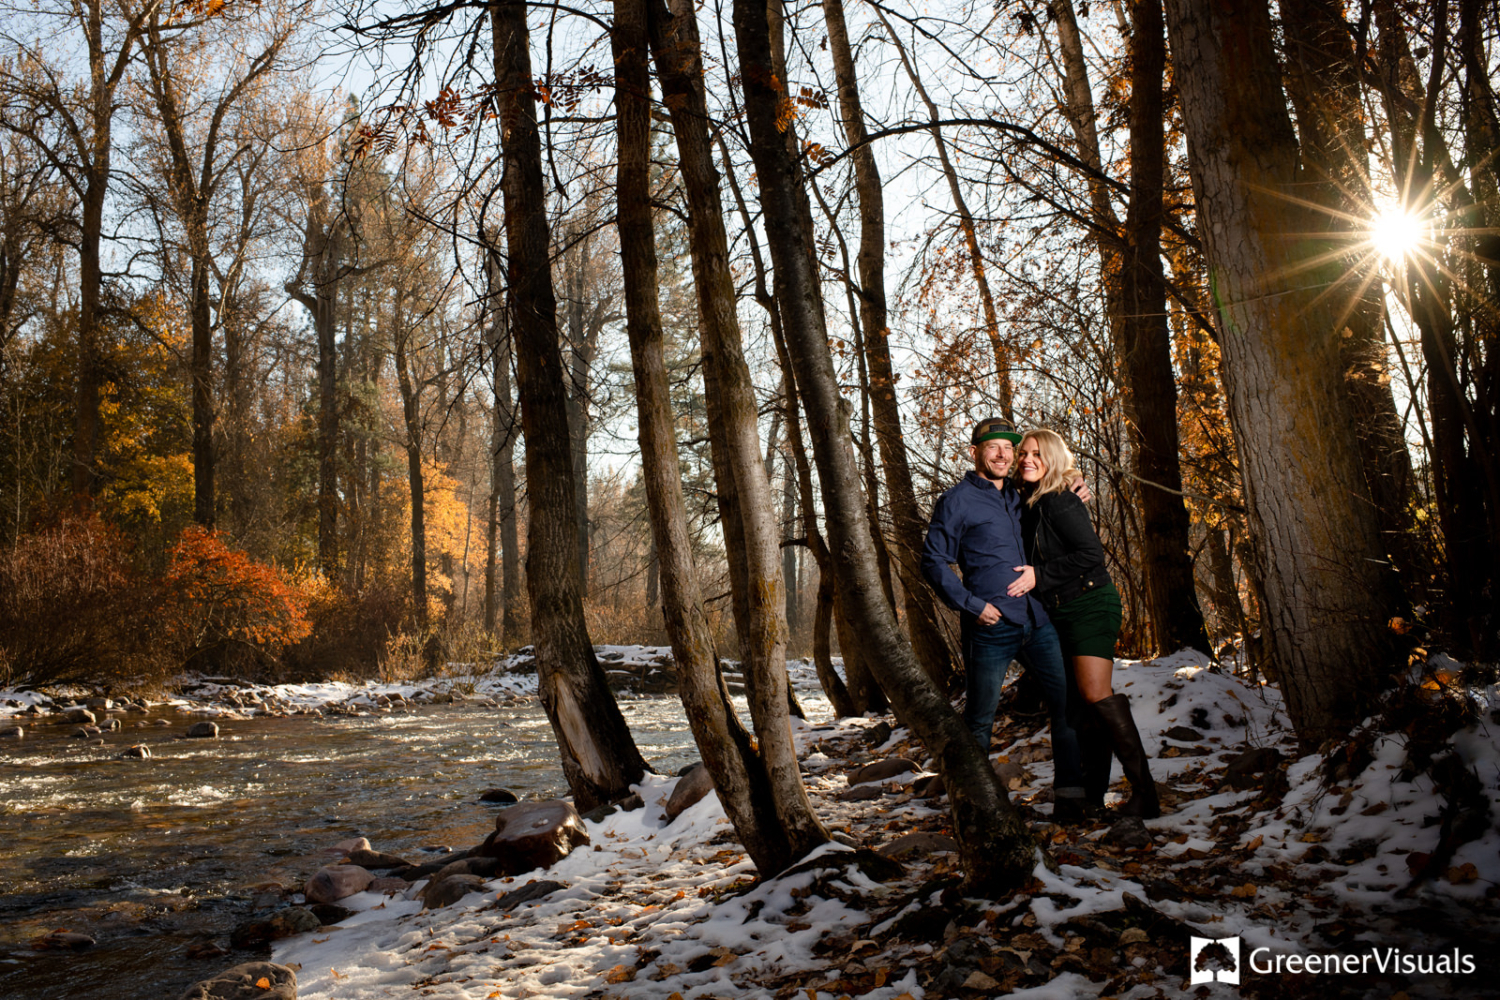 Greener-Visuals-Photography-Best-of-2020-Engagement